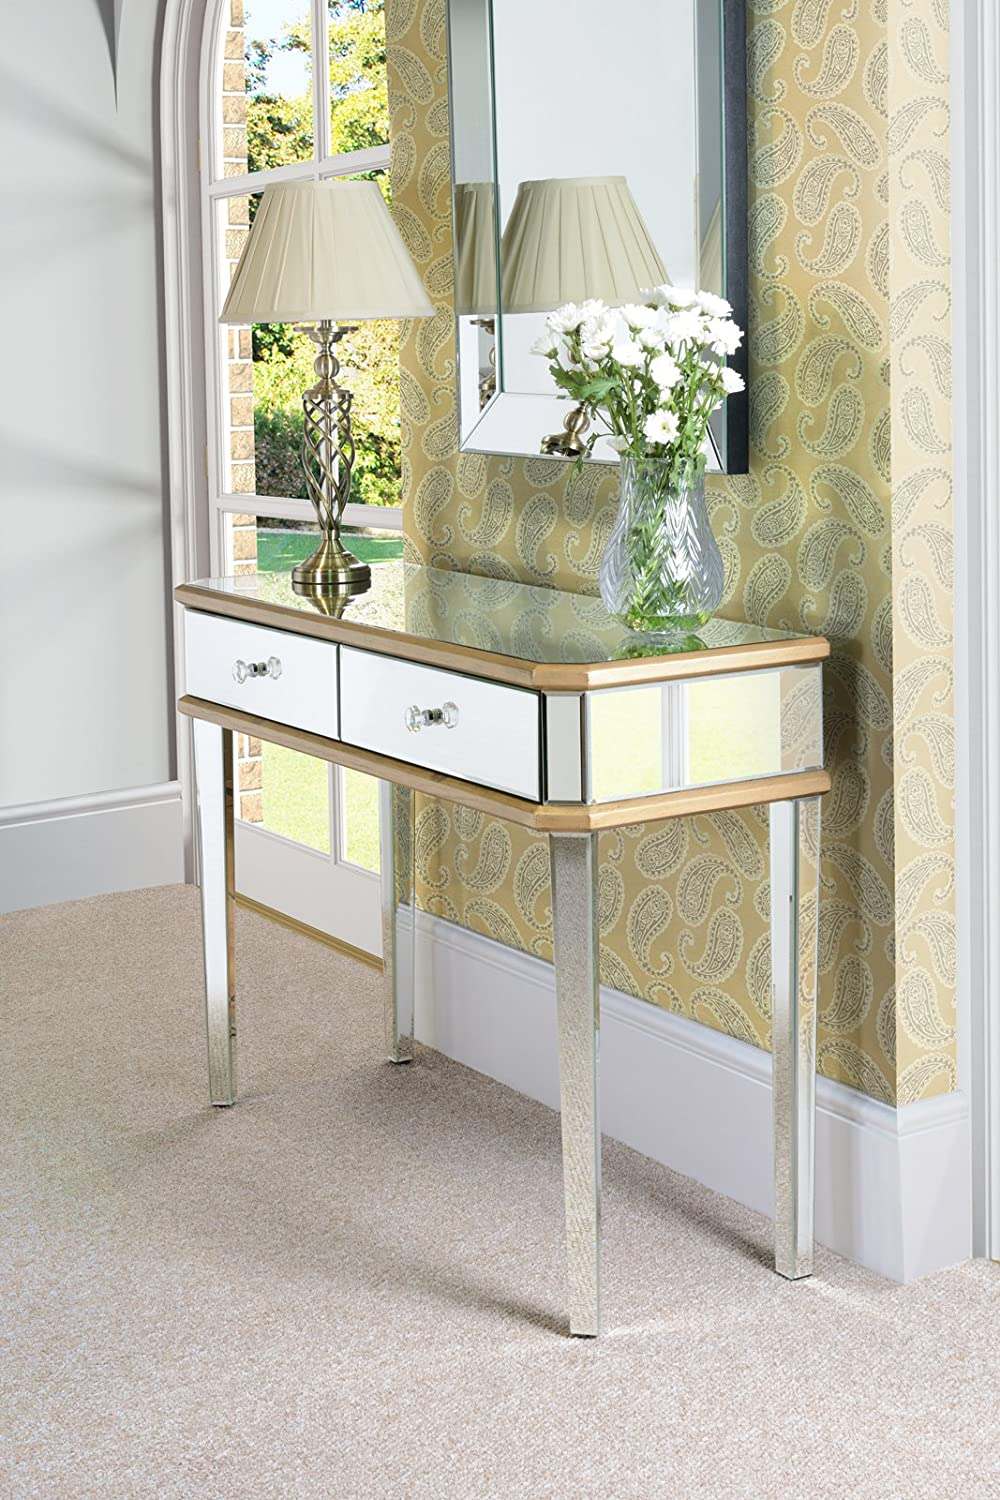 Etonnant MY Furniture   Mirrored Furniture Gold Gilt Dressing Console/table 4 Legs  (Versailles Range): Amazon.co.uk: Kitchen U0026 Home